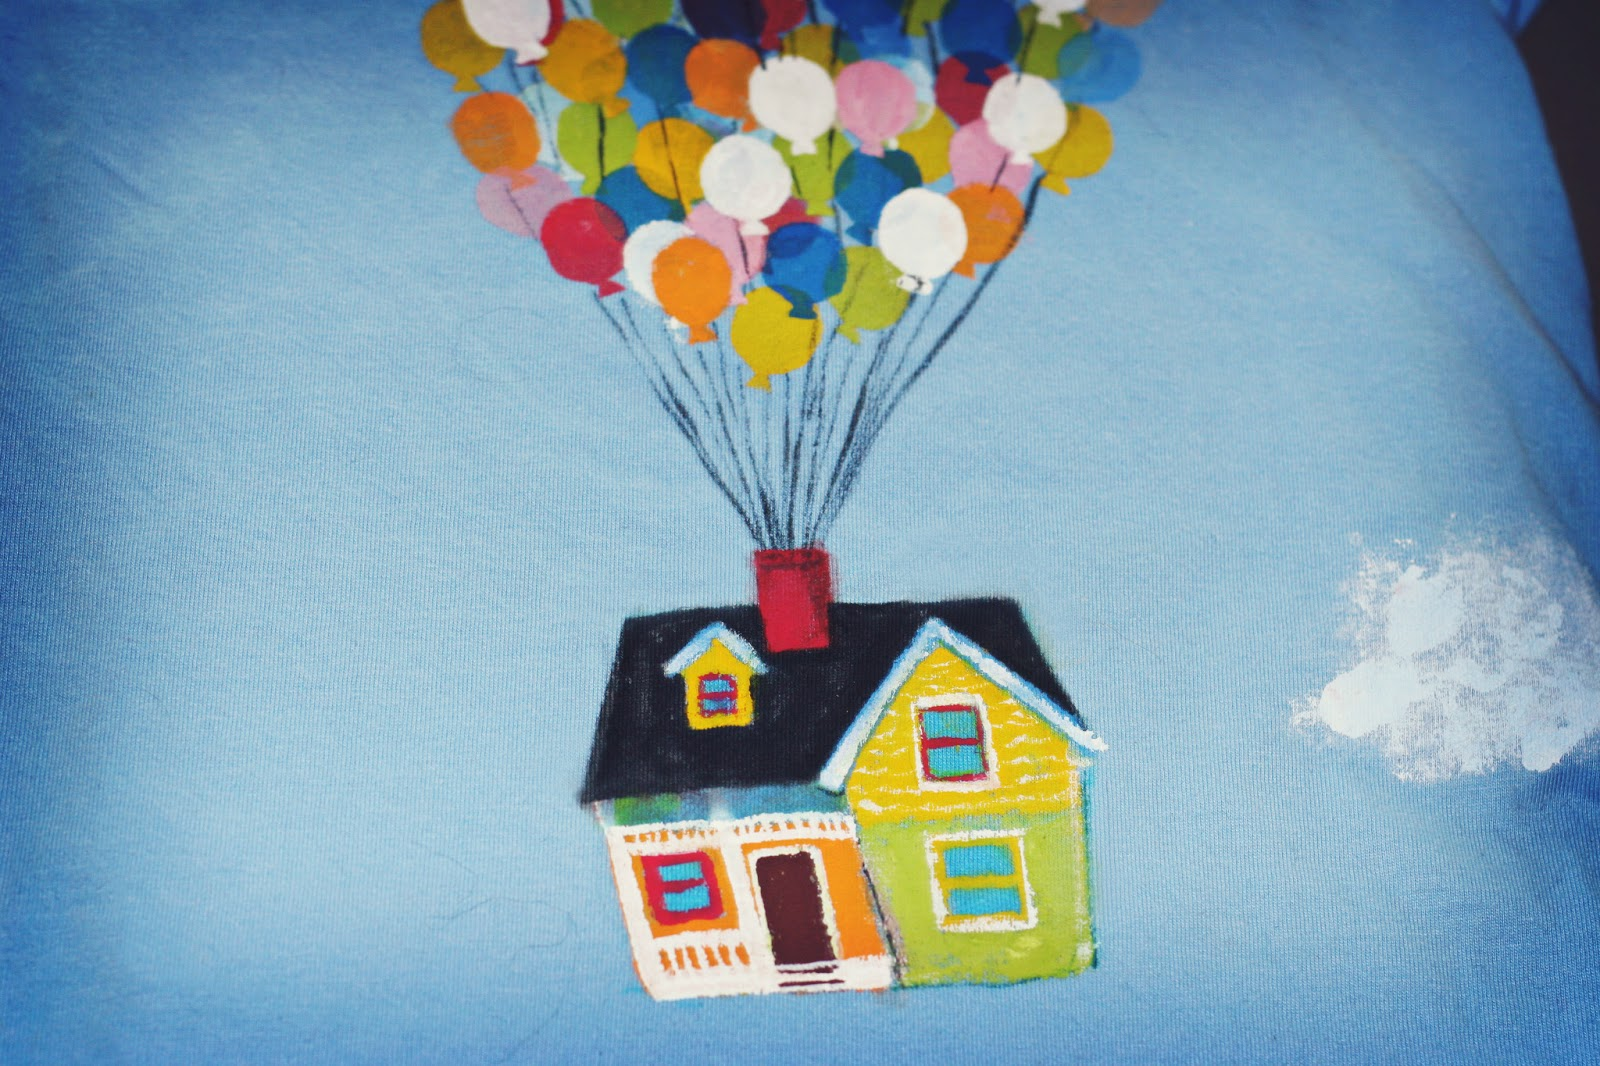 movie balloon house drawing